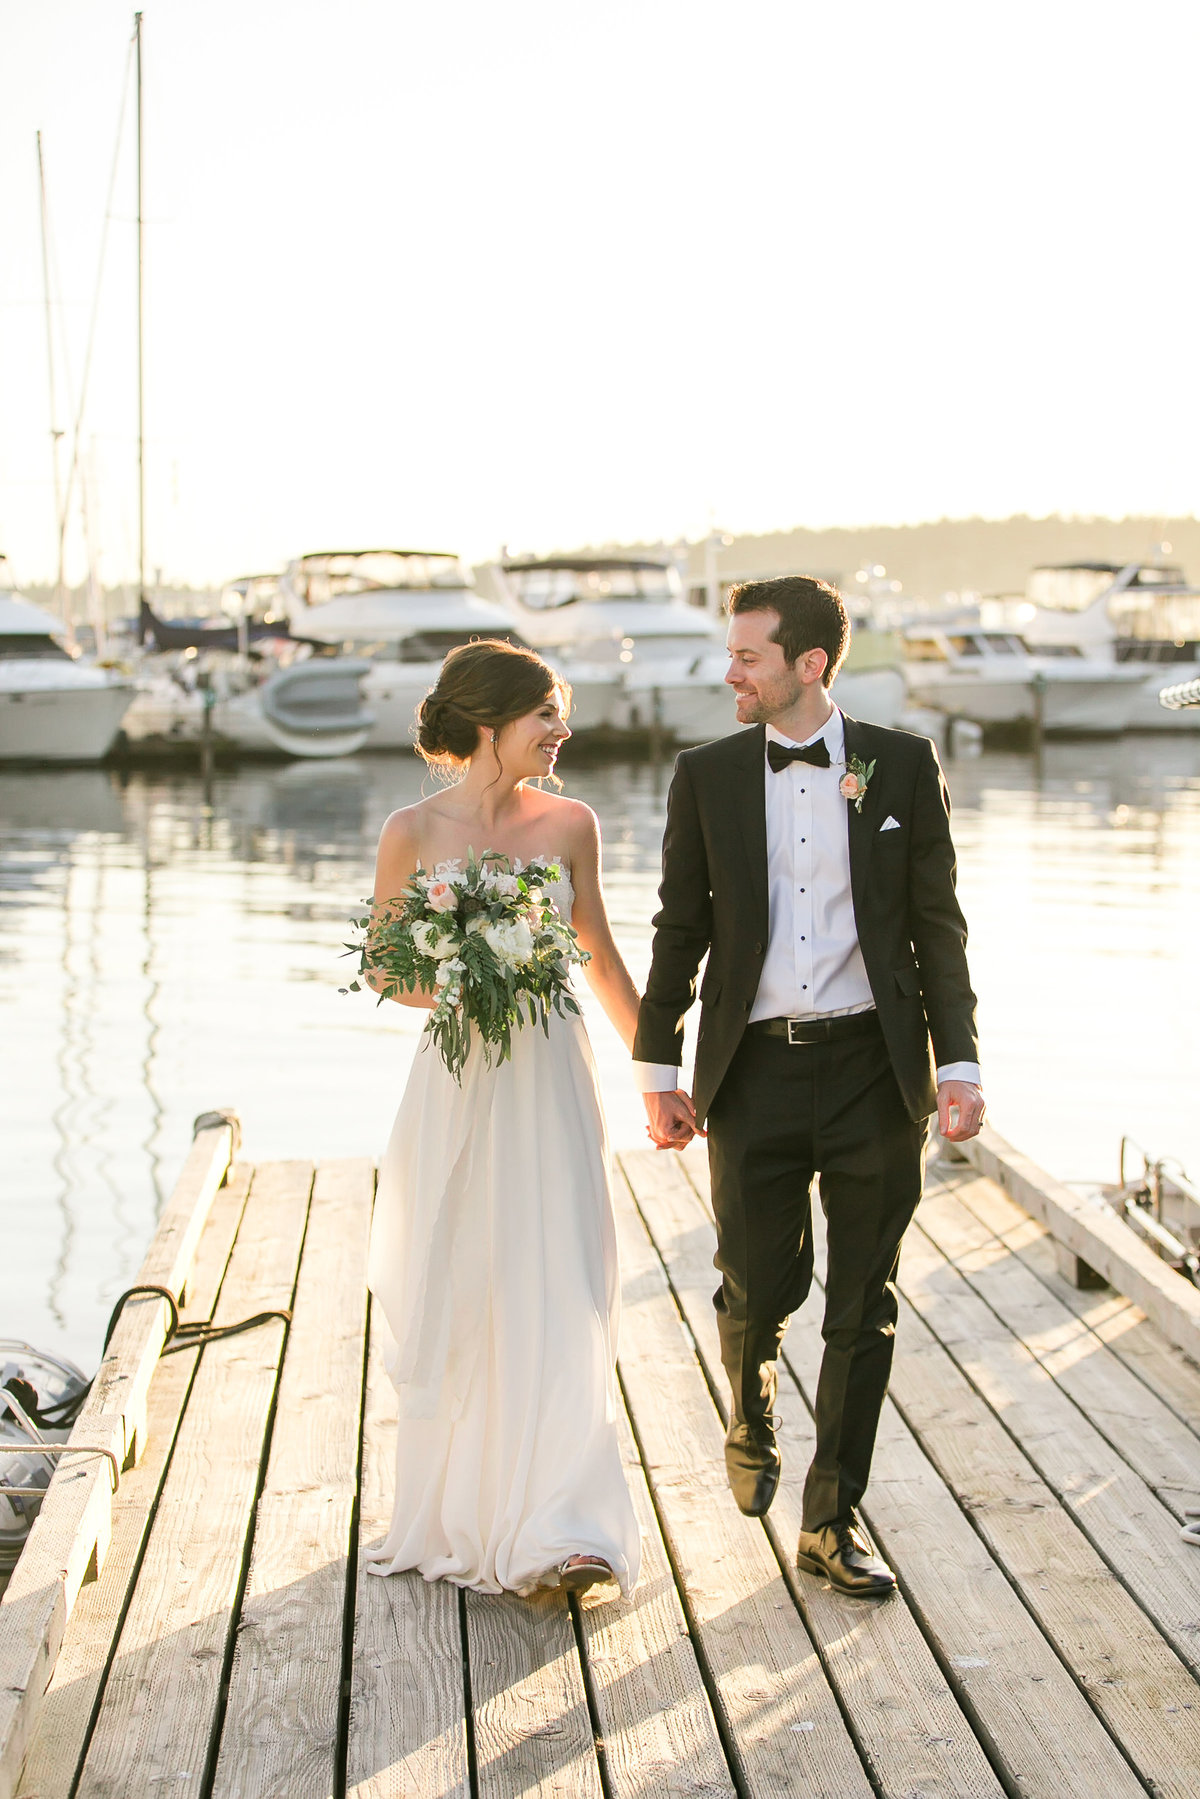 ashley-dave-roche-harbor-wedding478414